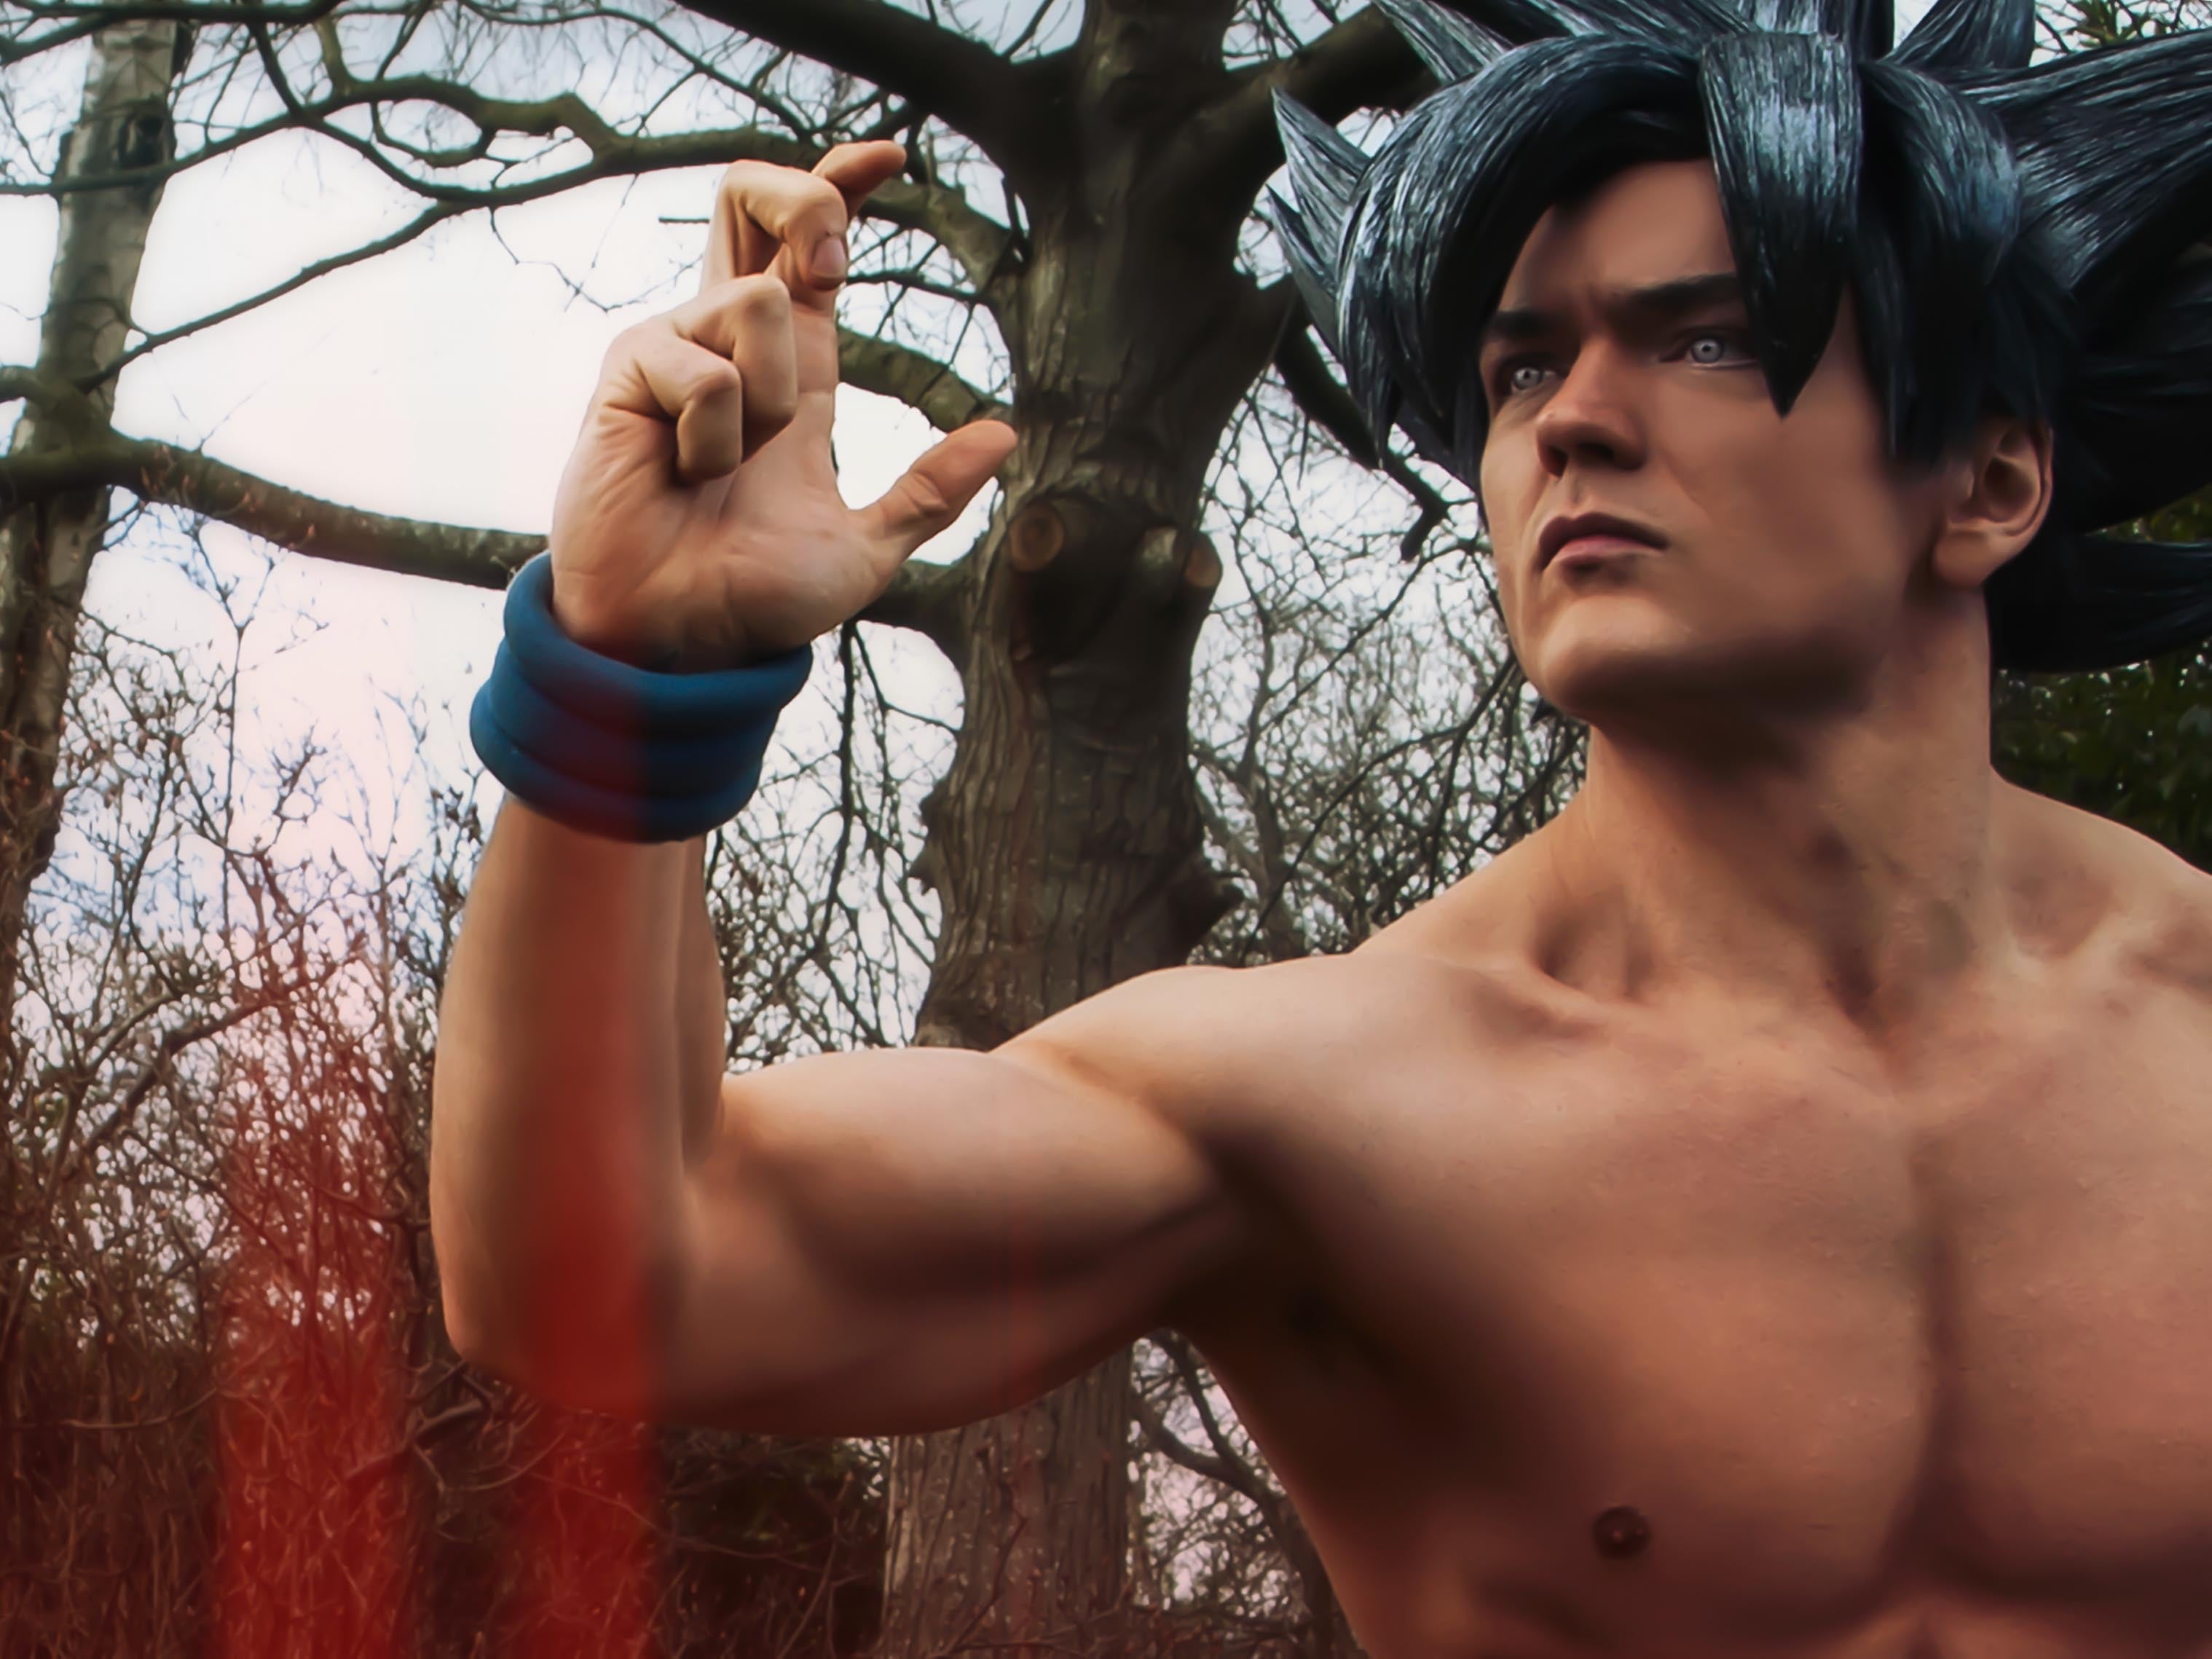 Goku cosplay from DragonBall Z in a fighting pose